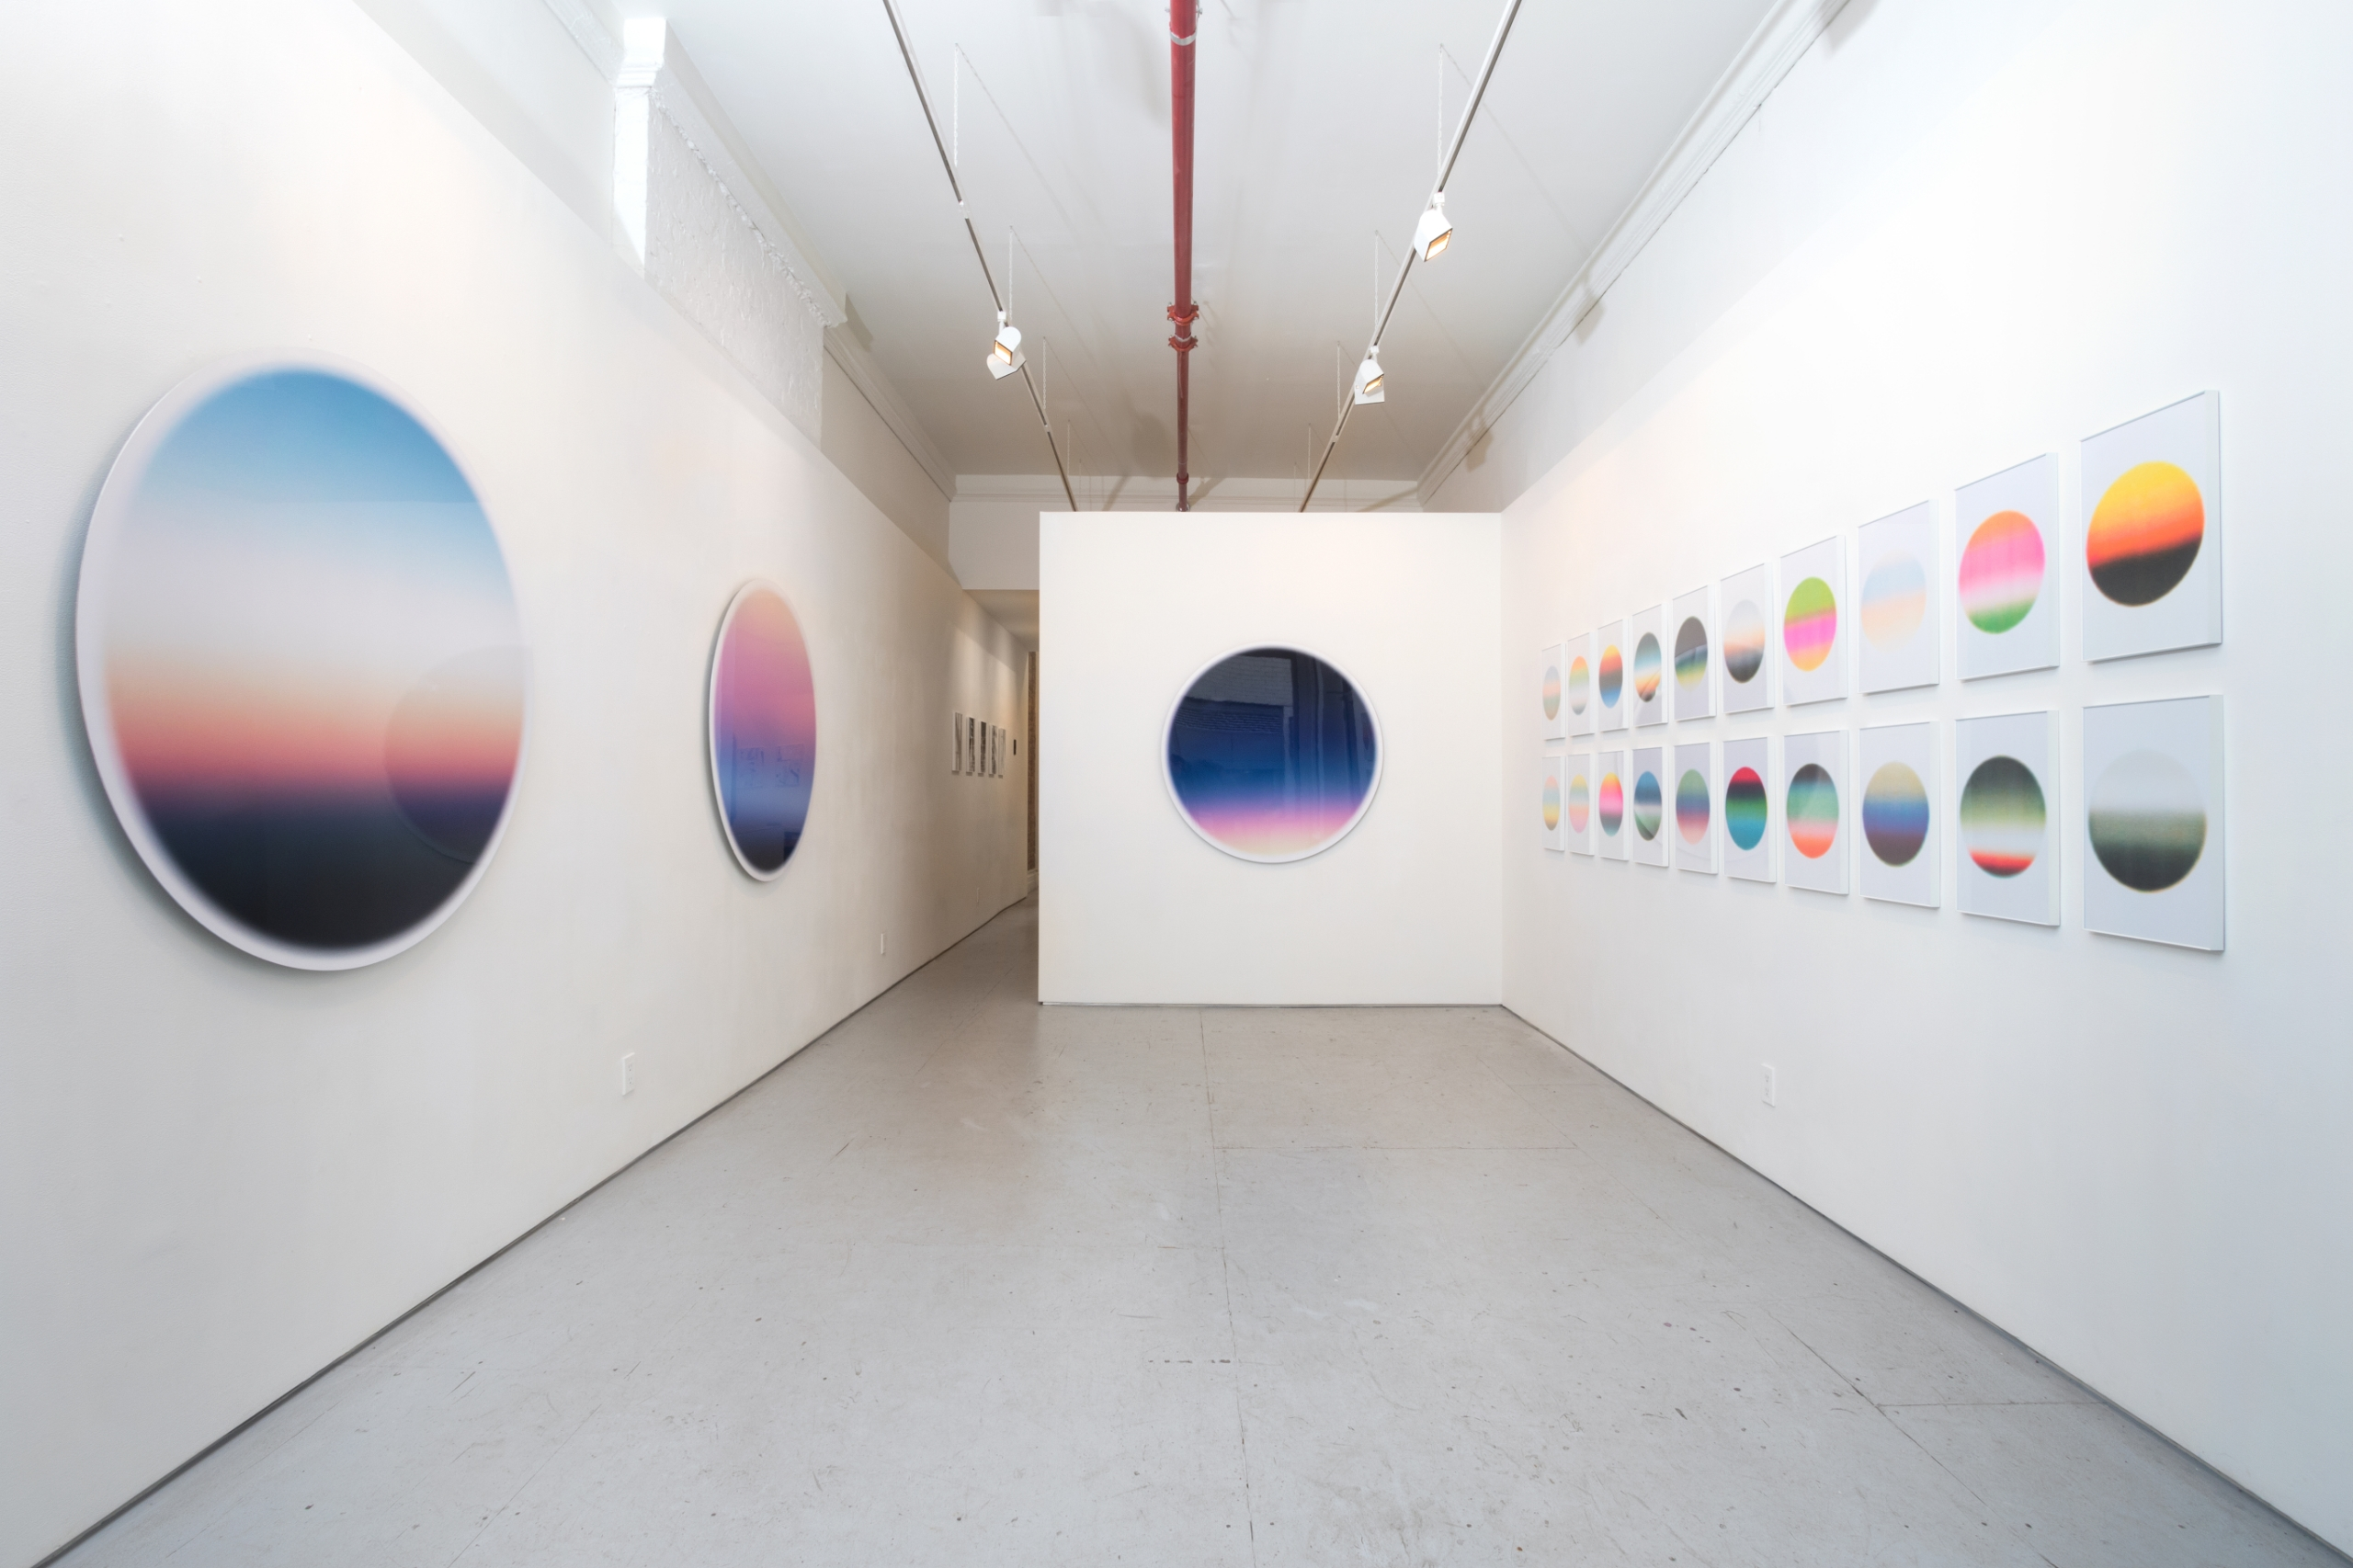 Installation view Lux Nova Plan - gregfoley | ello